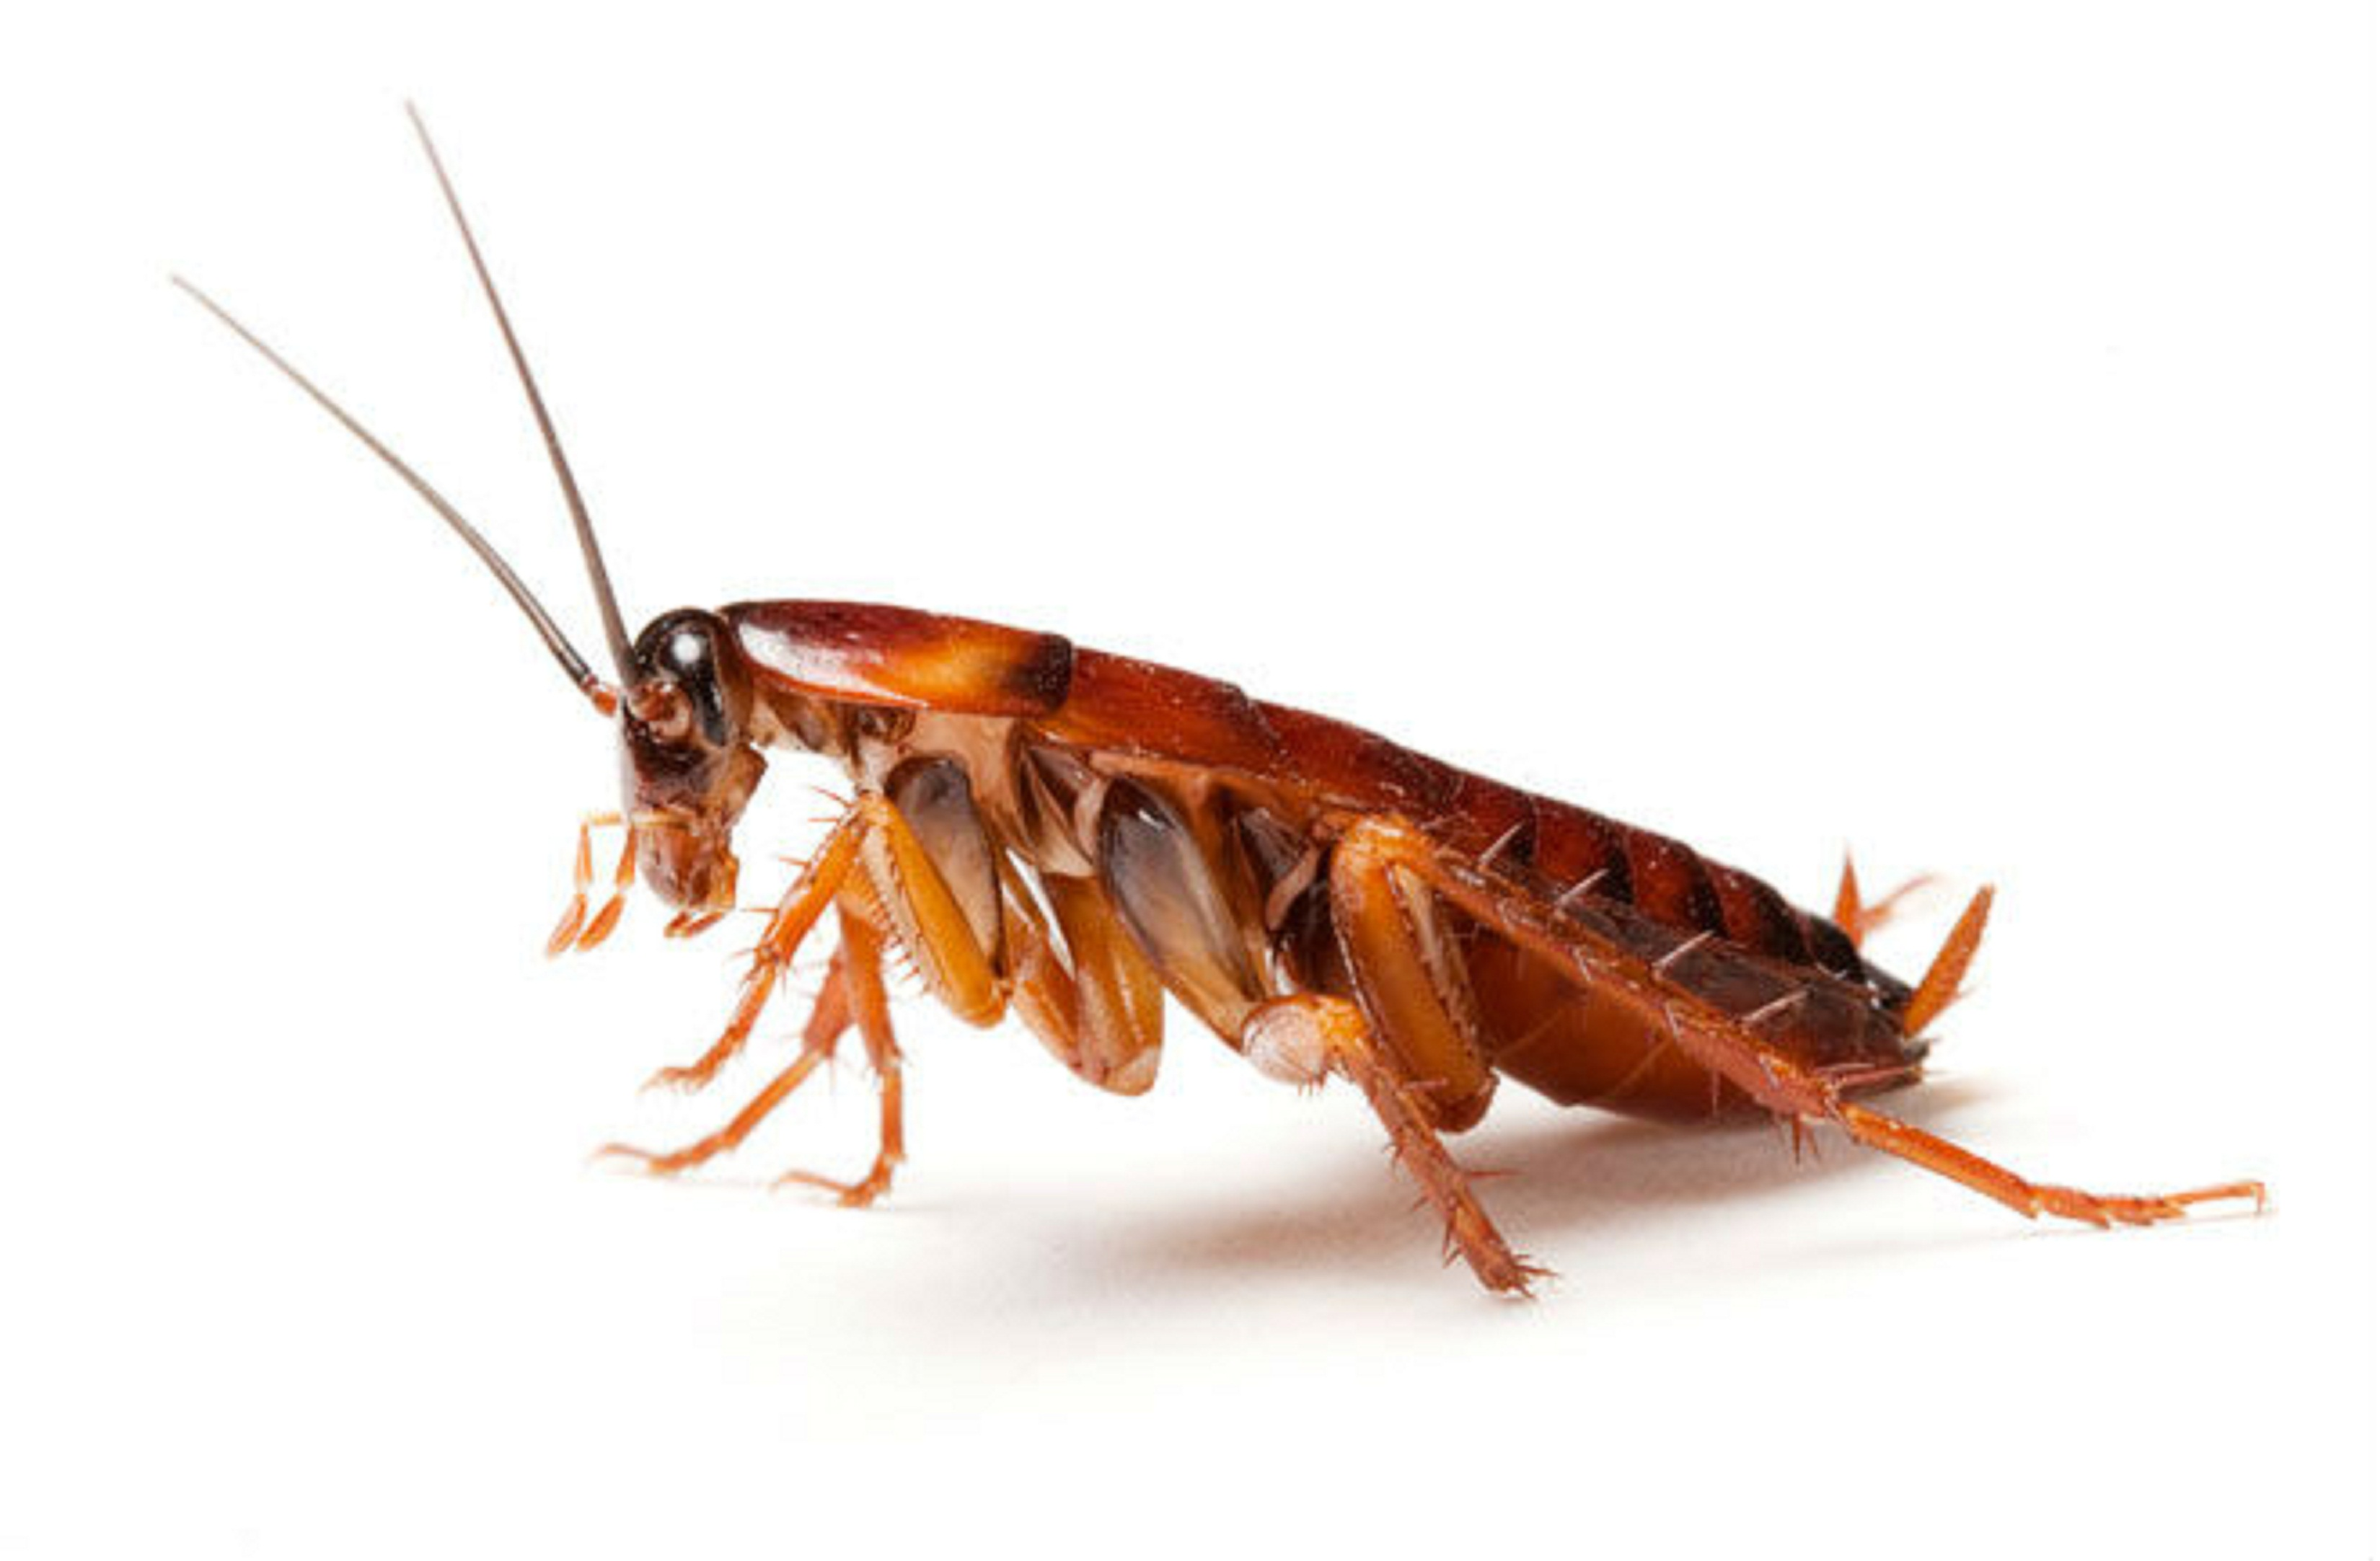 The cockroach discussion